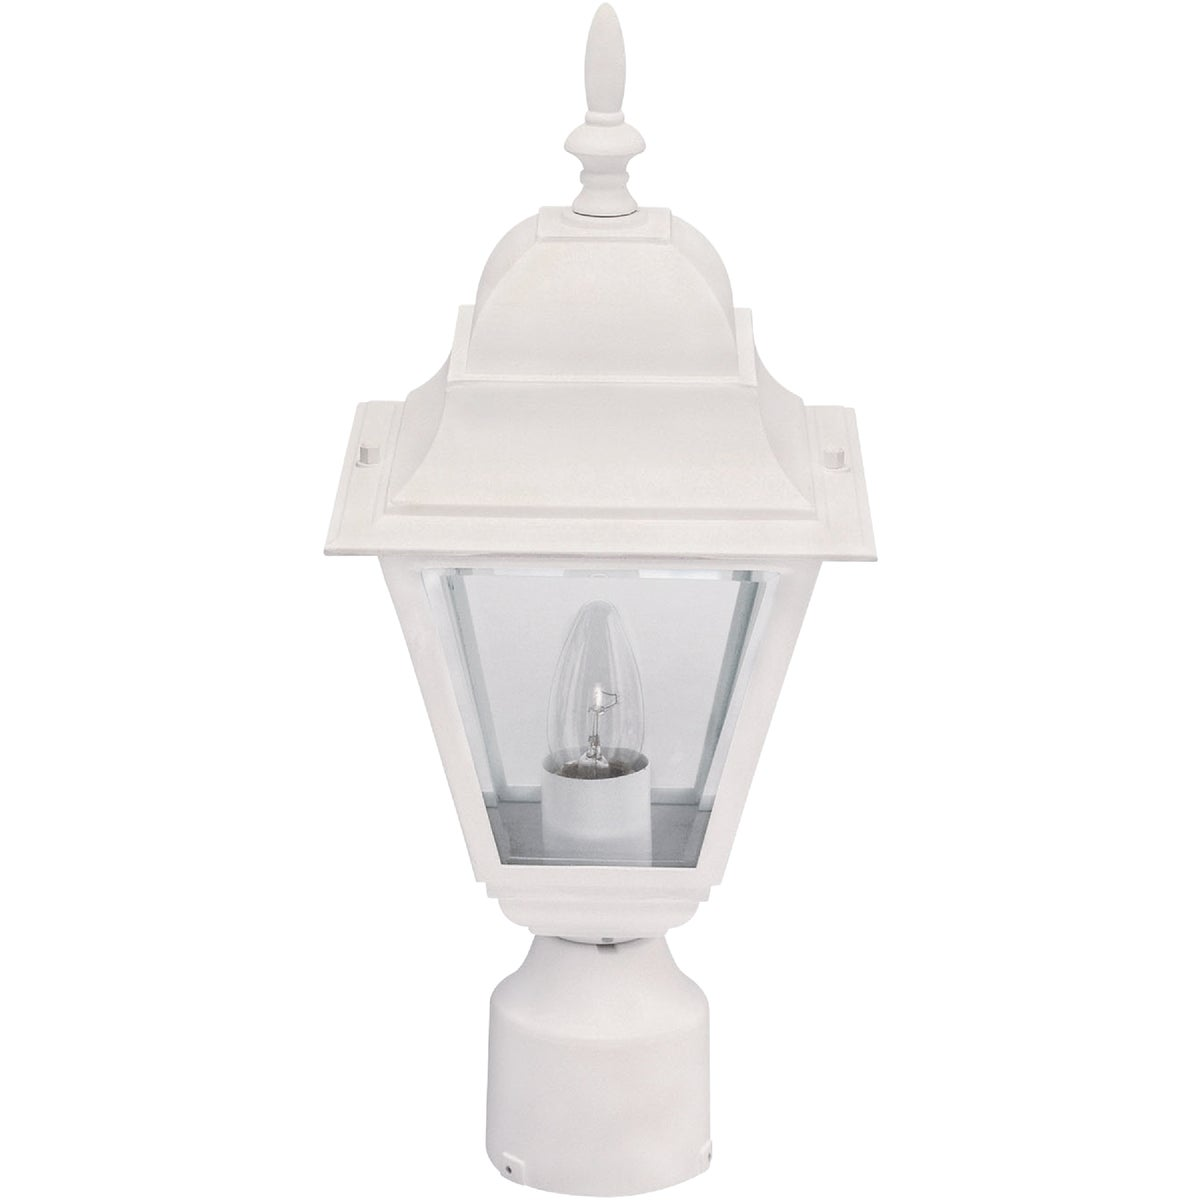 WHITE OUTDOOR LANTERN - IOL13WH by Canarm Gs